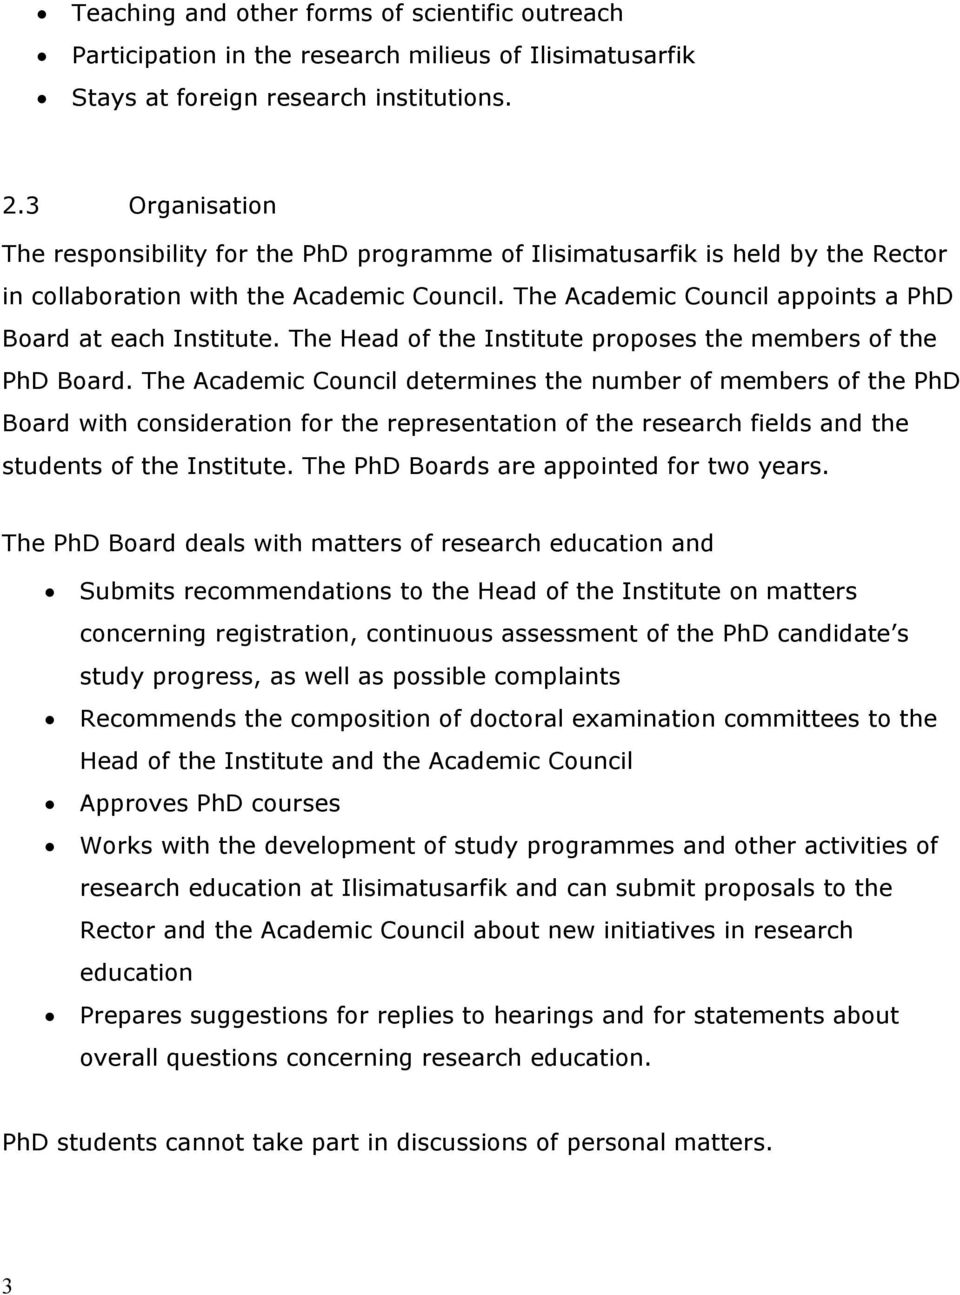 The Academic Council appoints a PhD Board at each Institute. The Head of the Institute proposes the members of the PhD Board.